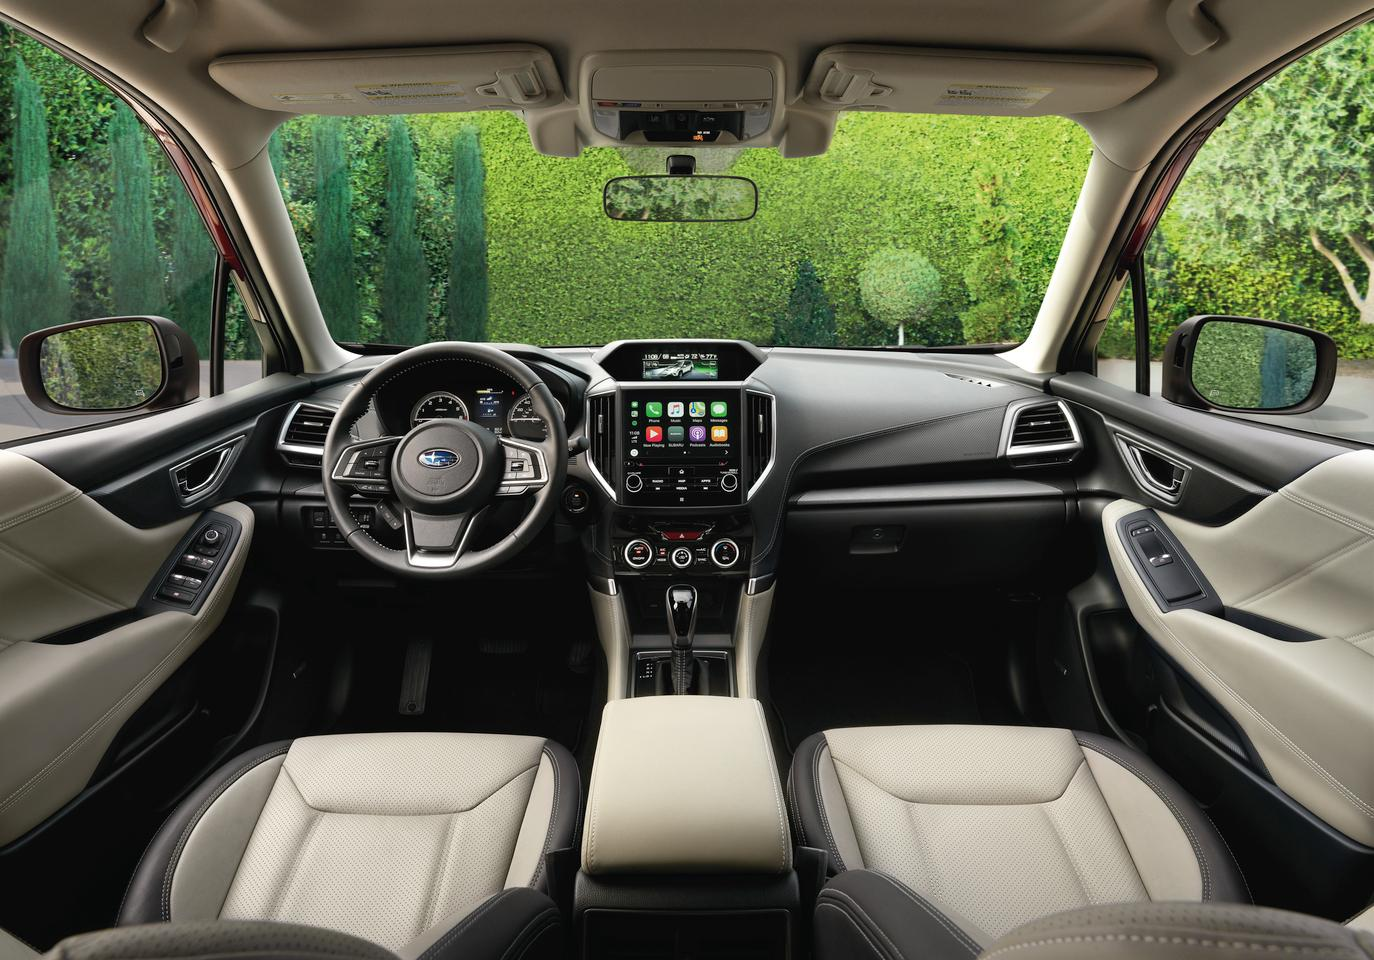 Much of the focus for the new 2019 Subaru Forester is on the inclusion of the company's EyeSight safety and driver convenience system as standard